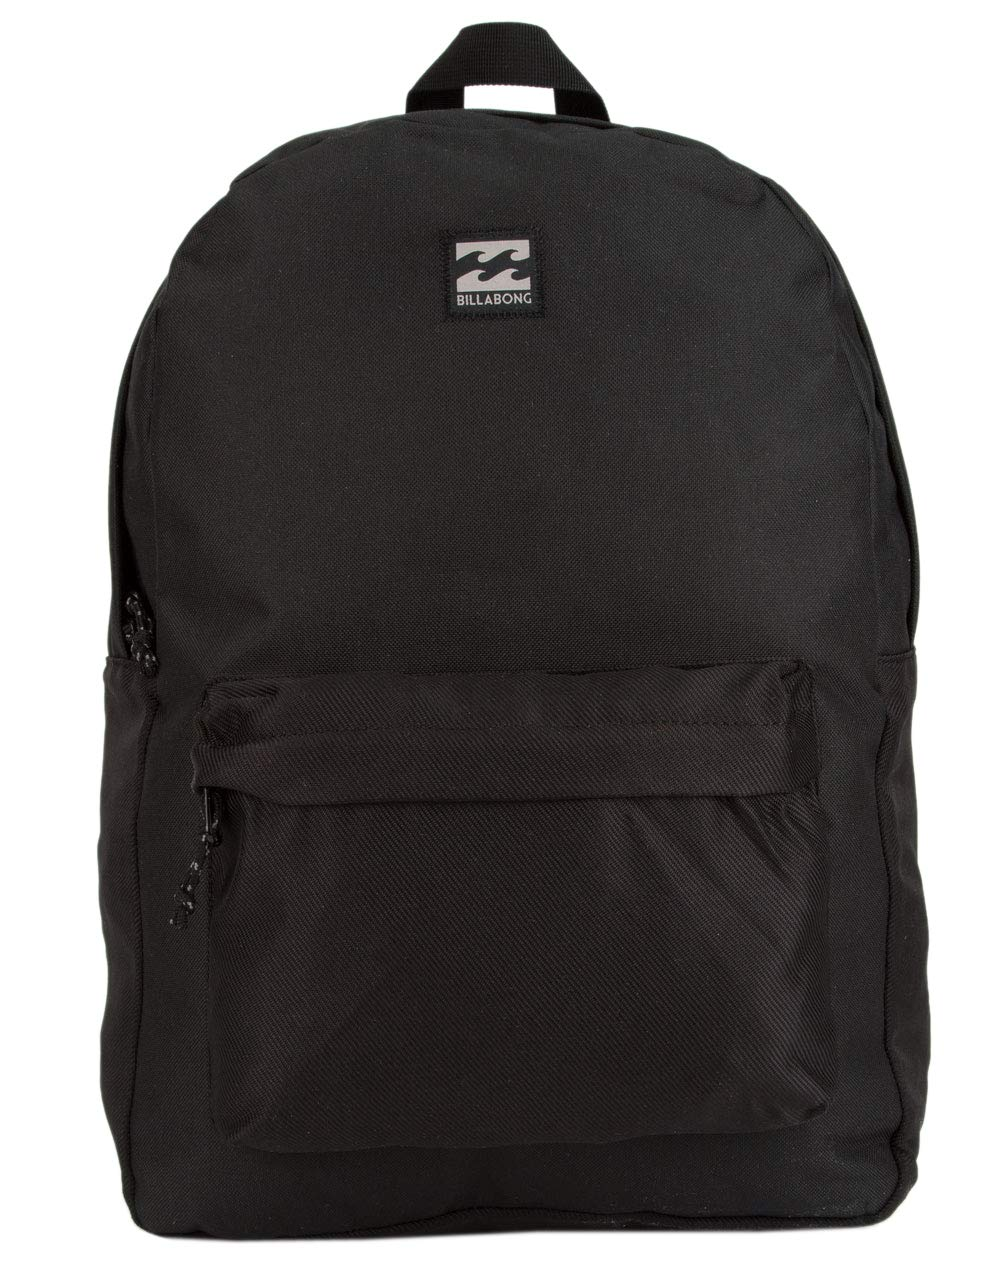 Billabong Men's All Day Pack '19 Backpacks,One Size,Stealth by Billabong